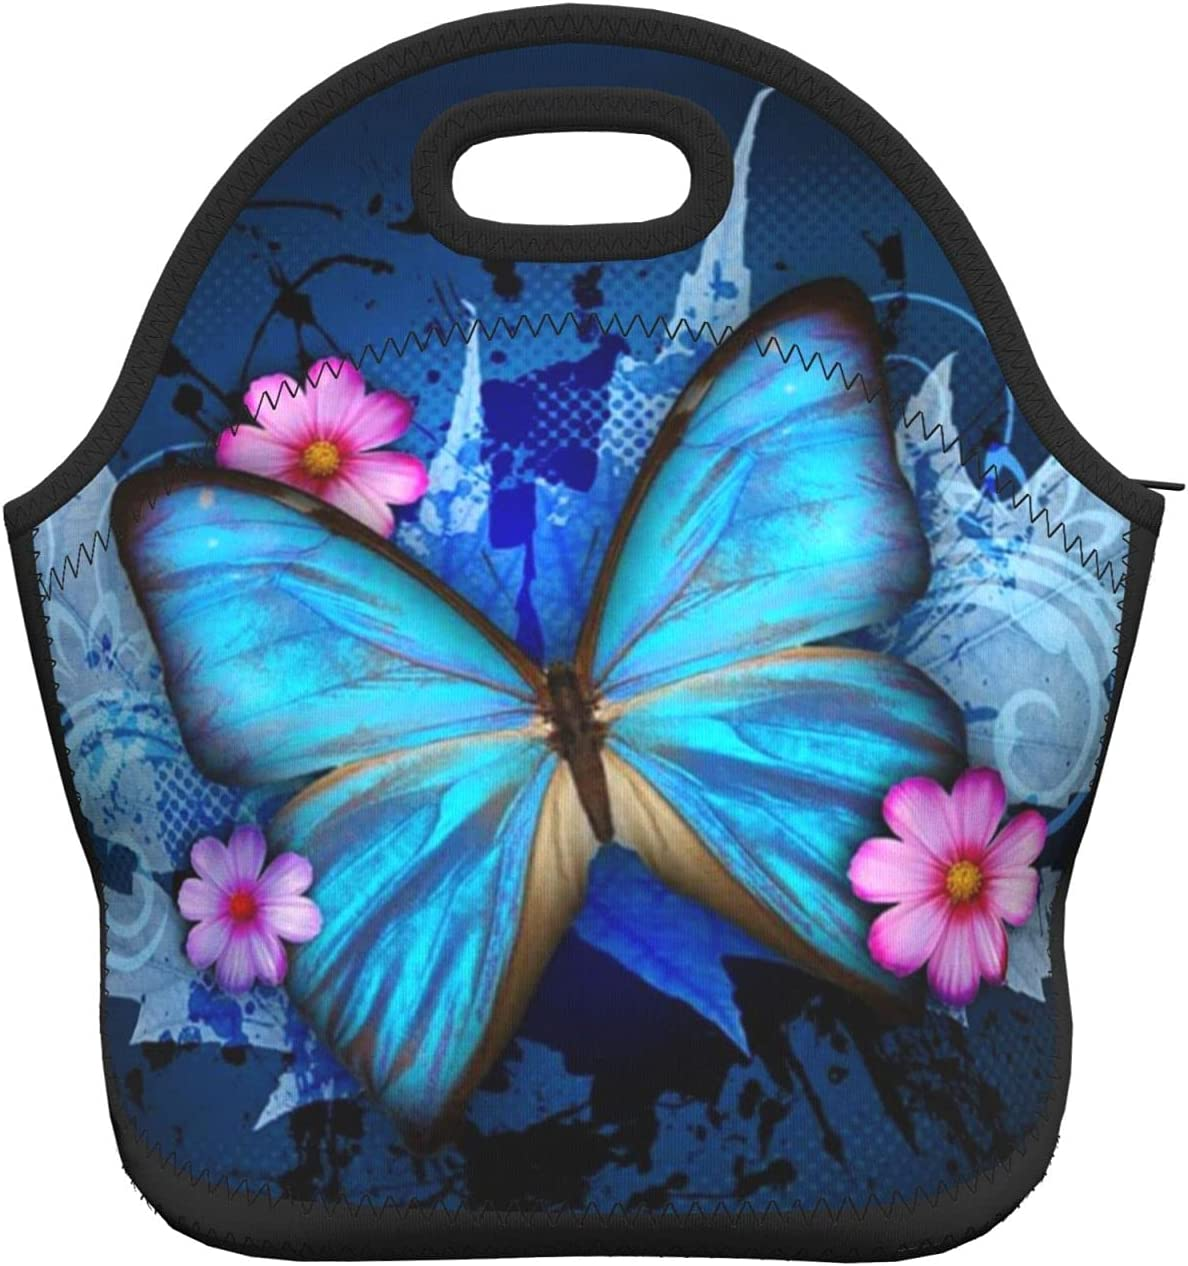 Pretty Butterfly With Flowers Neoprene Lunch Bag Insulated Lunch Box Cooler Bag Tote Portable Reusable Lunch Bags For Men Women Adults